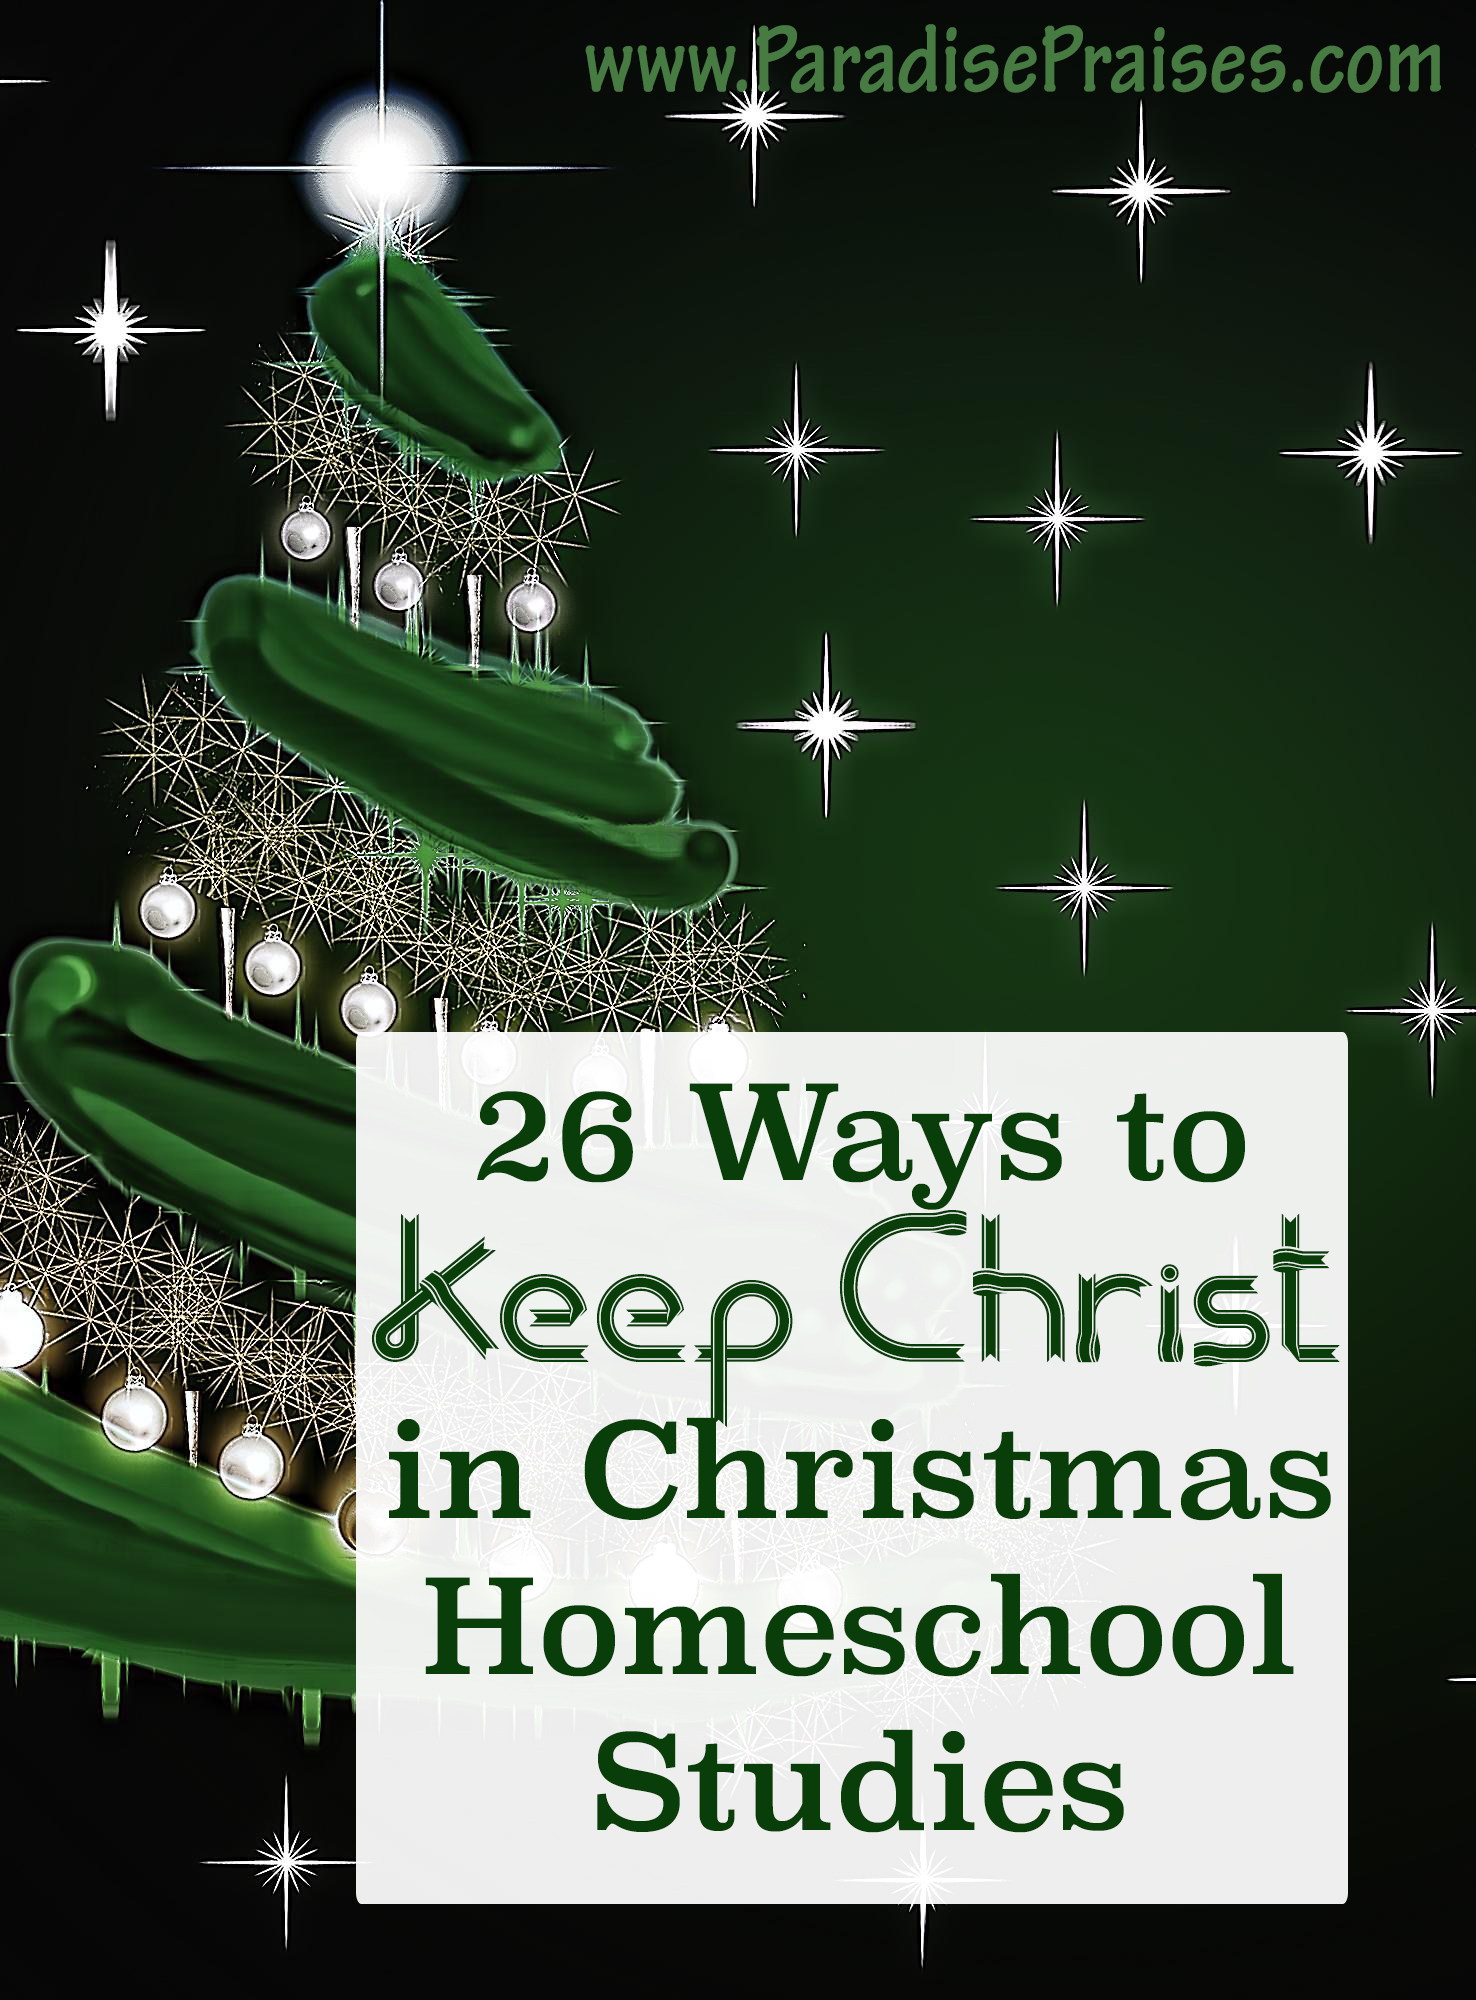 26 Ways to Keep Christ in Christmas Homeschool Studies by ParadisePraises.com